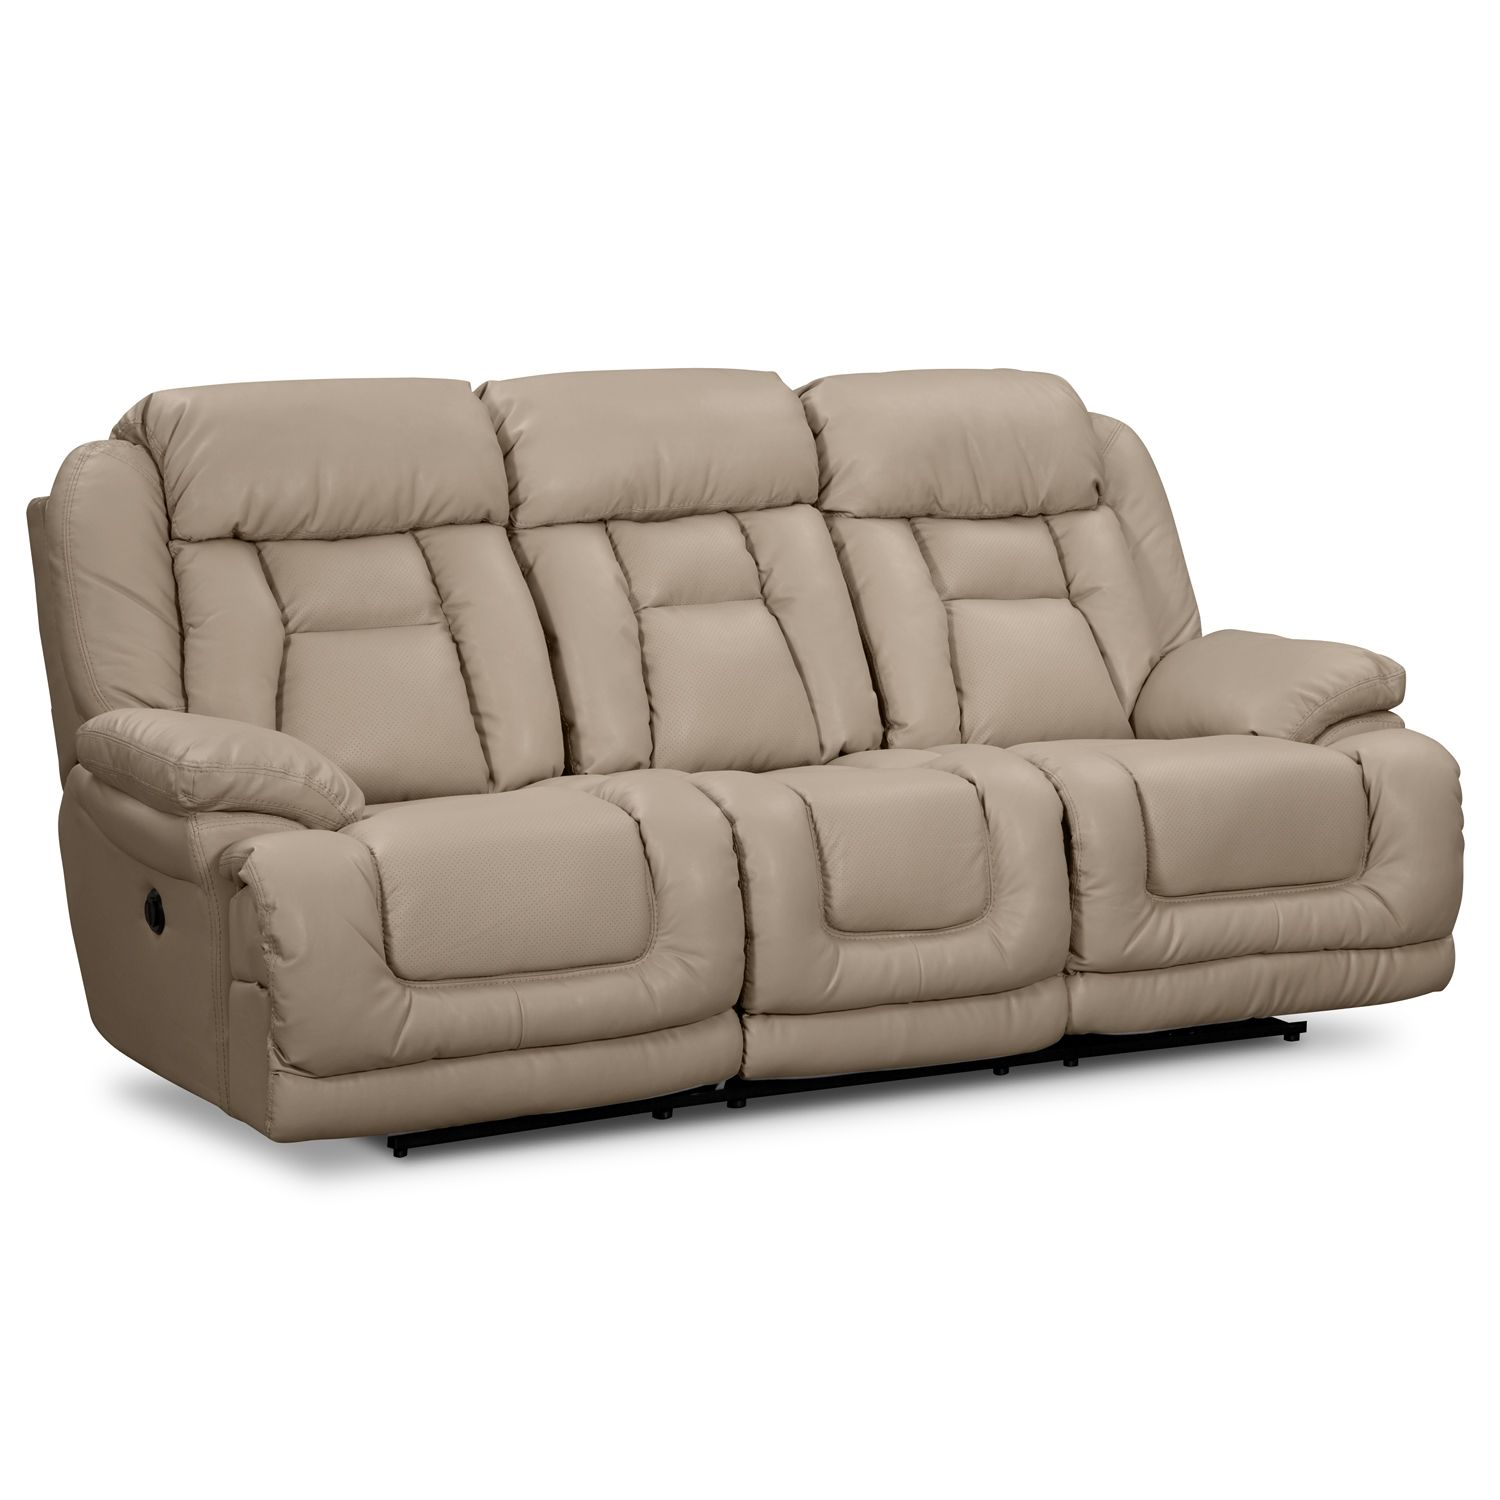 Springer Wheat Leather Power Reclining Sofa | Furniture.com  sc 1 st  Pinterest & Springer Wheat Leather Power Reclining Sofa | Furniture.com ... islam-shia.org